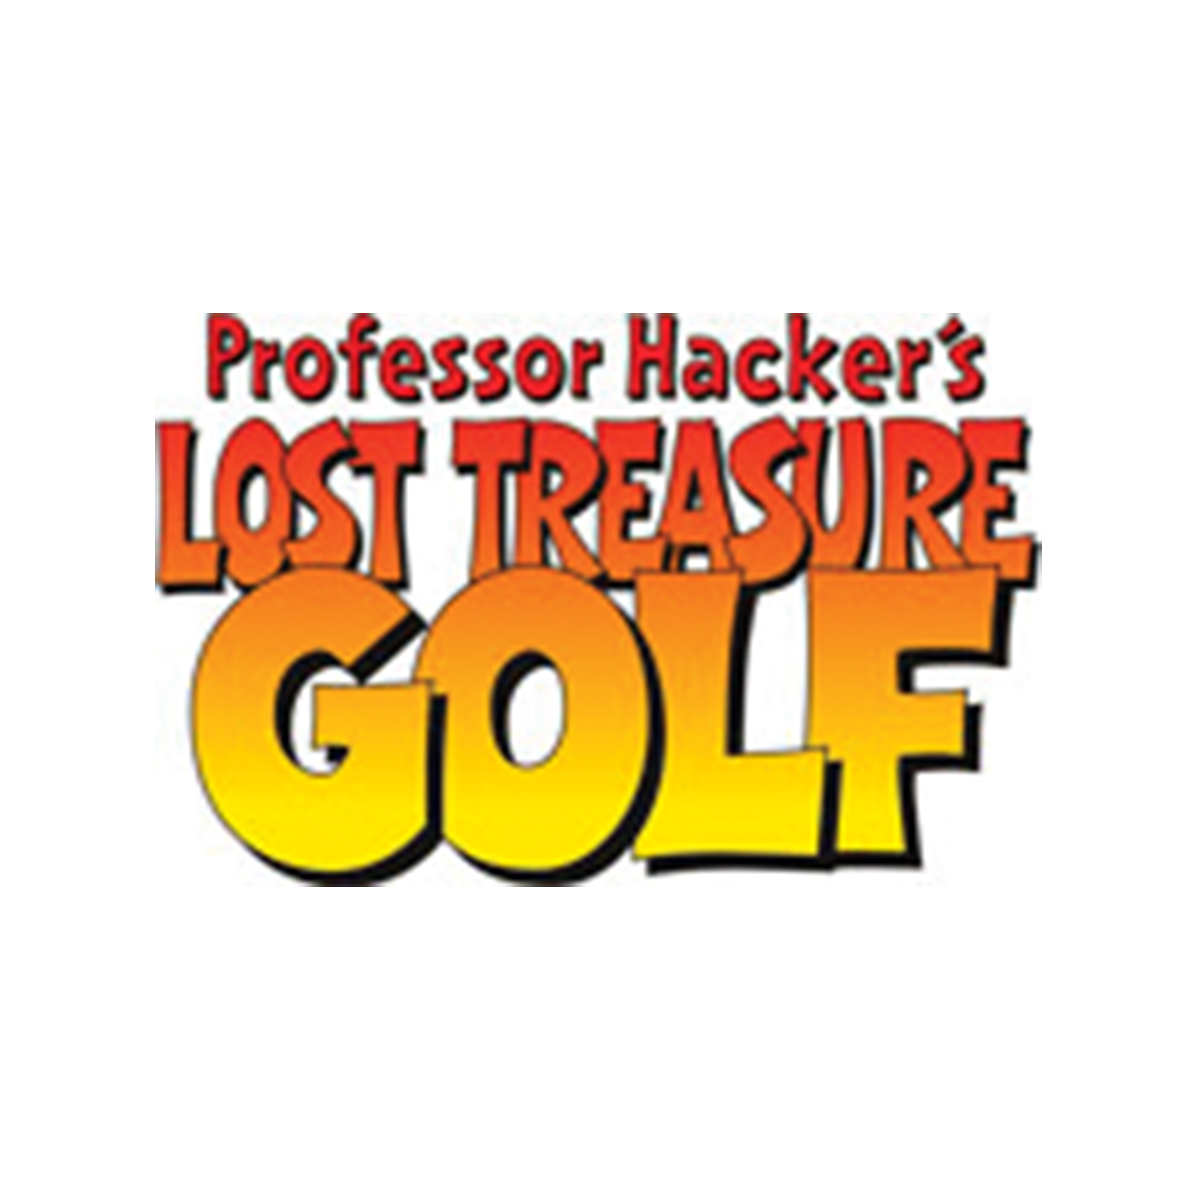 Lost Treasure Golf 2019 SMCB Logo.jpg